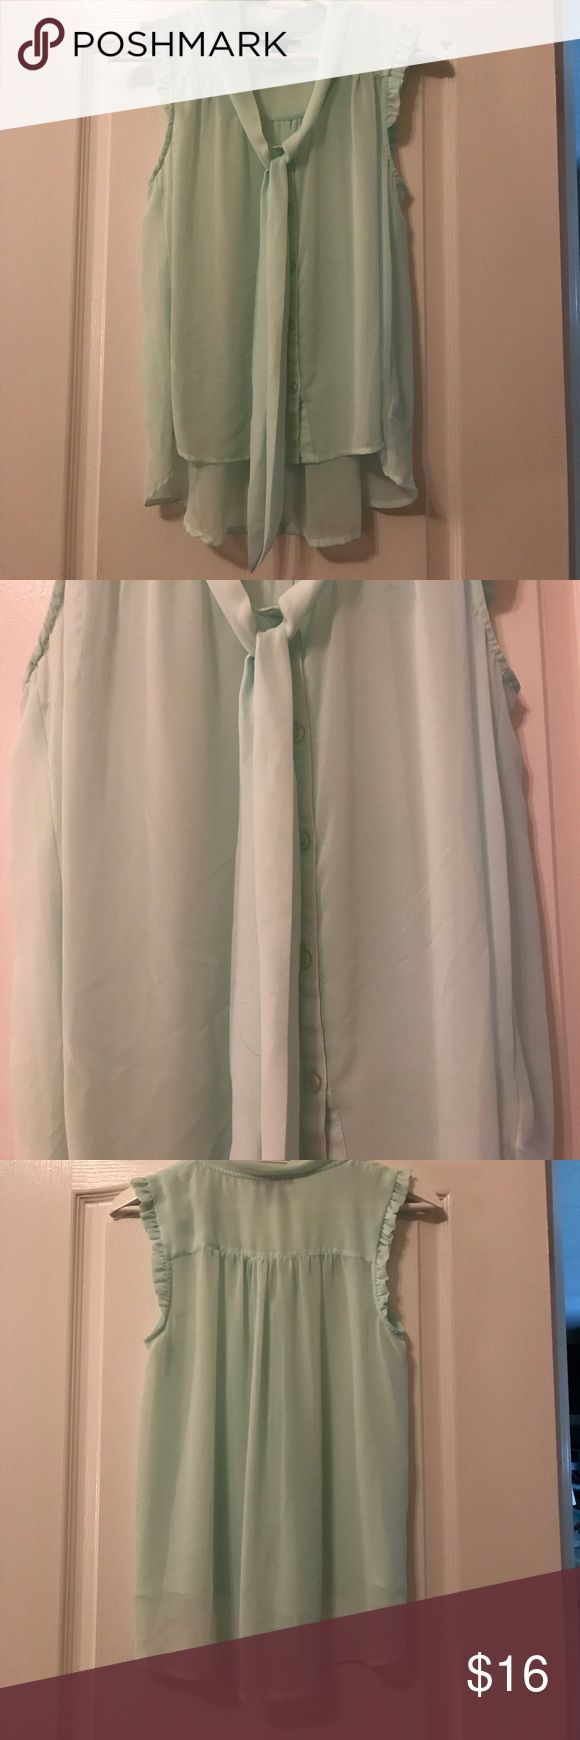 💎just In Forever 21 sheer mint blouse Stunning a line sheer blouse by Forever 21 in May not with front tie collar sleeveless EUC not a mark on it Forever 21 Tops Blouses